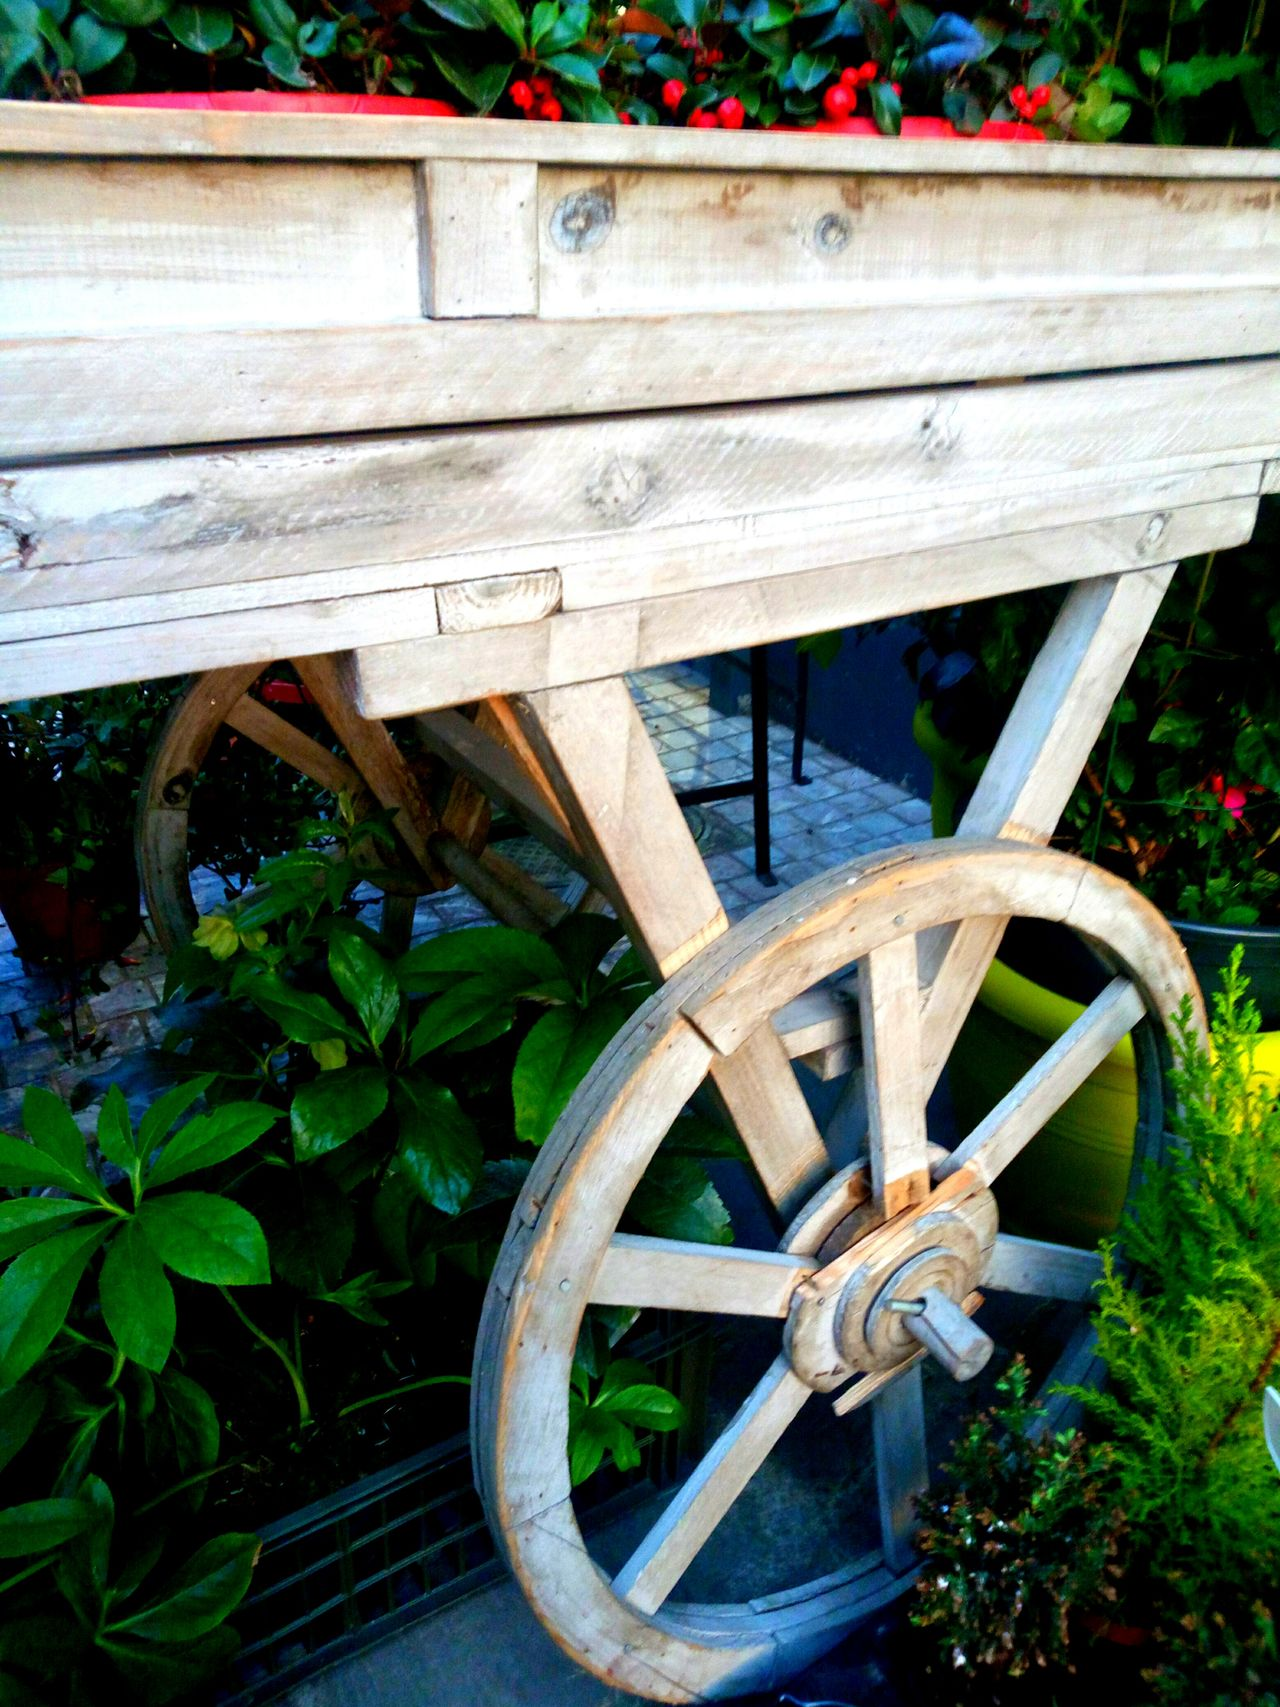 Old trolley for flowers - старая тележка для цветов Damaged Day No People Old Old Trolley For Flowers Outdoors Plant Trolley Wheel Wood - Material Wooden Worn Out старая тележка для цветов